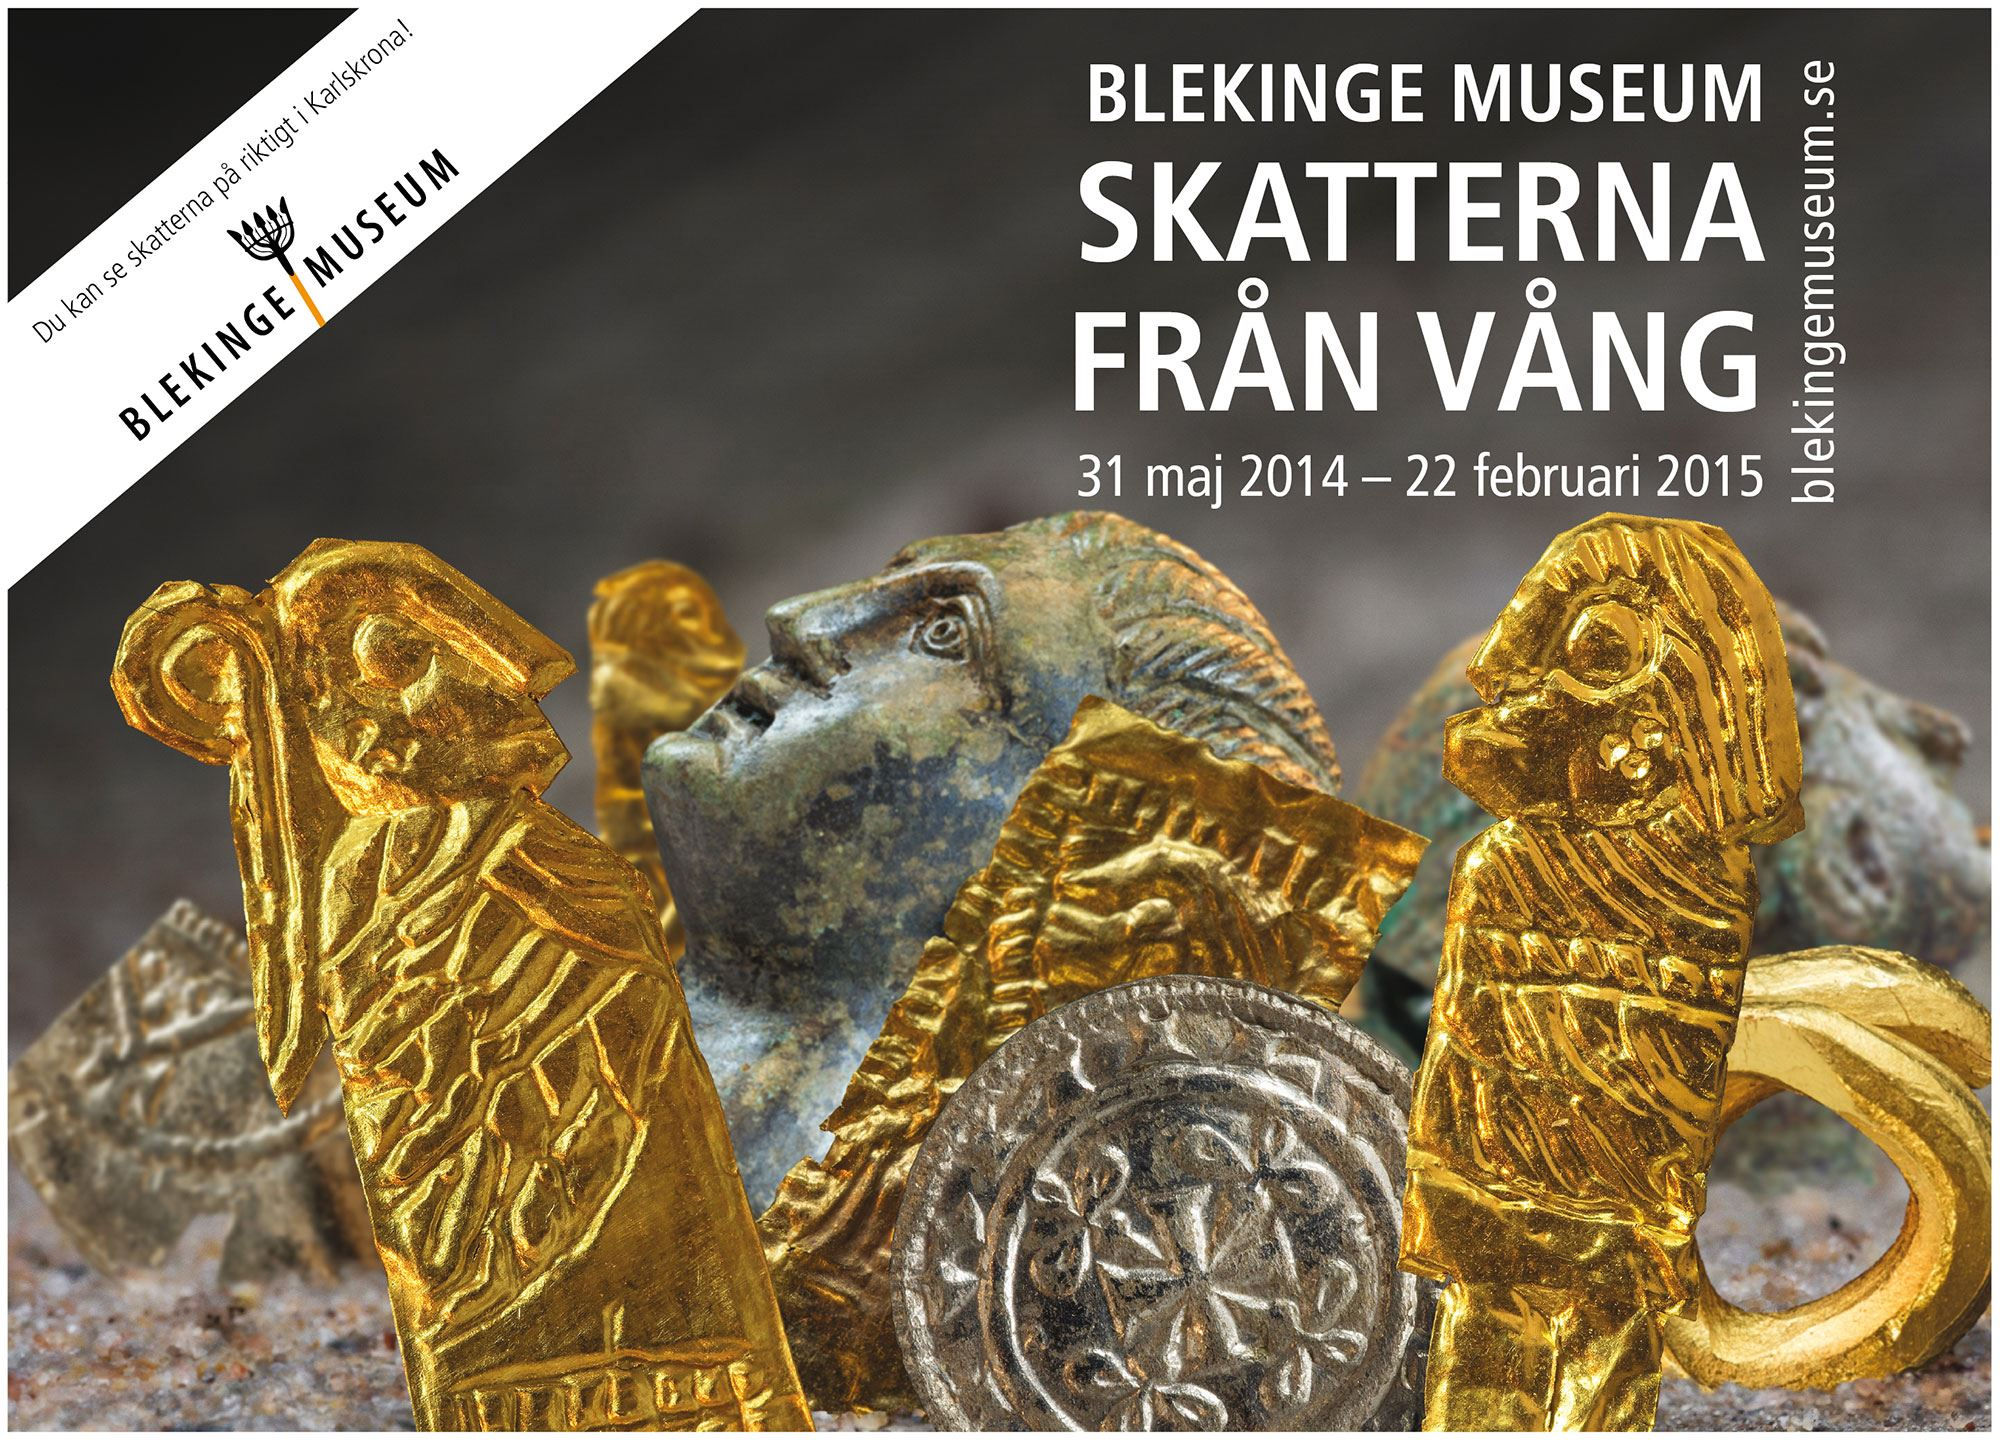 Exhibition - The treasures from Vång